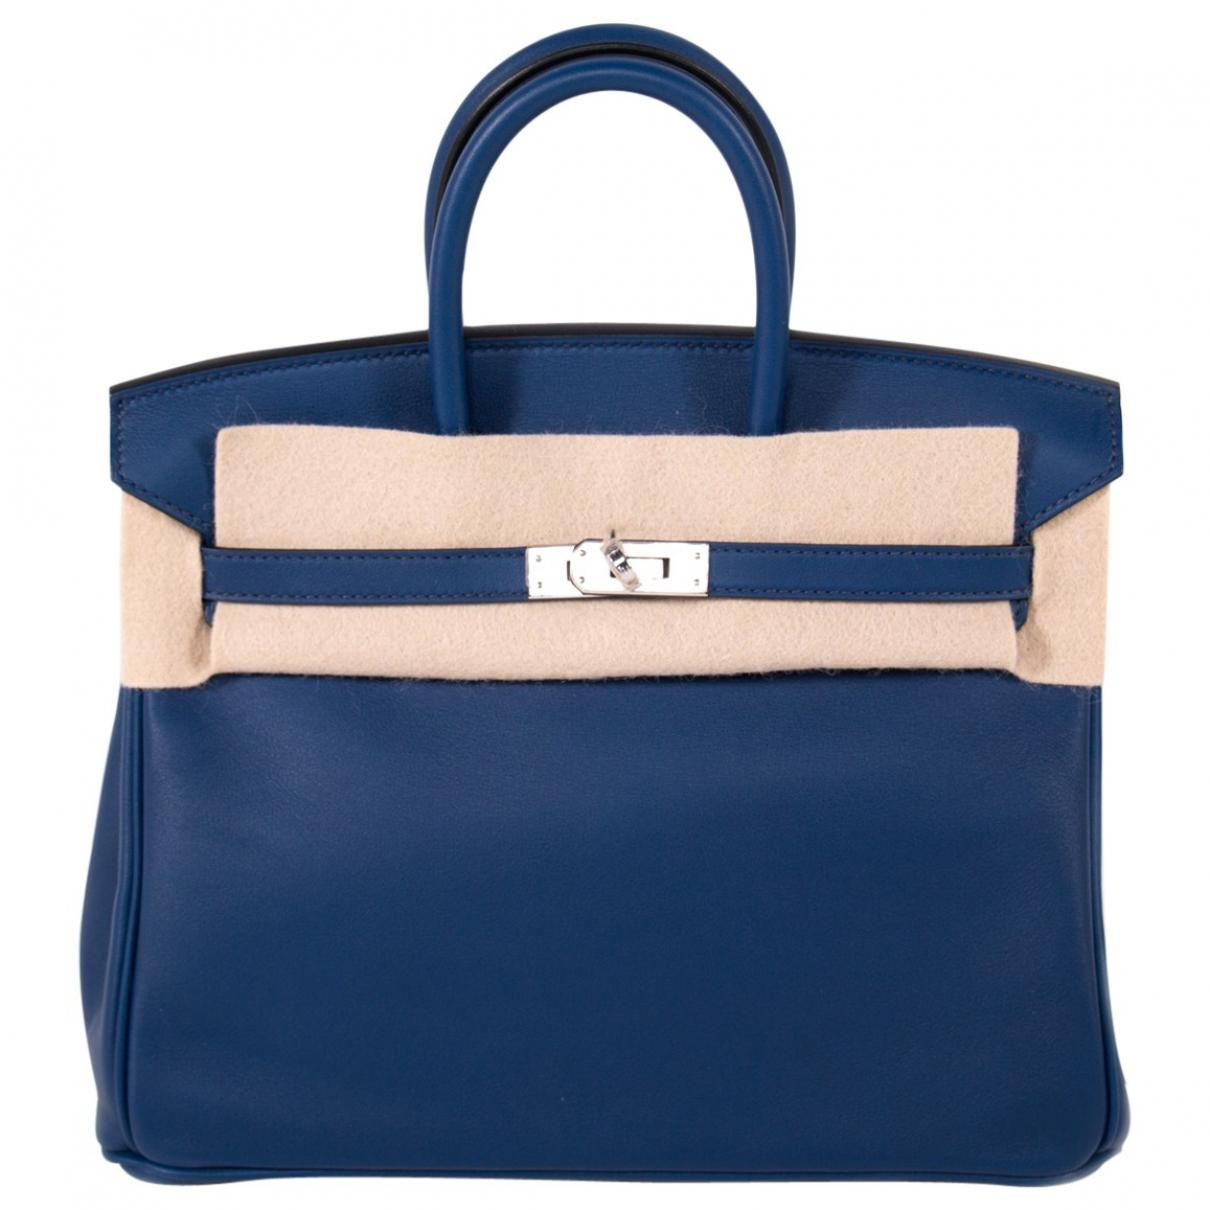 65d77d3fda Gallery. Previously sold at  Vestiaire Collective · Women s Leather Handbags  Women s Hermes Birkin Bag